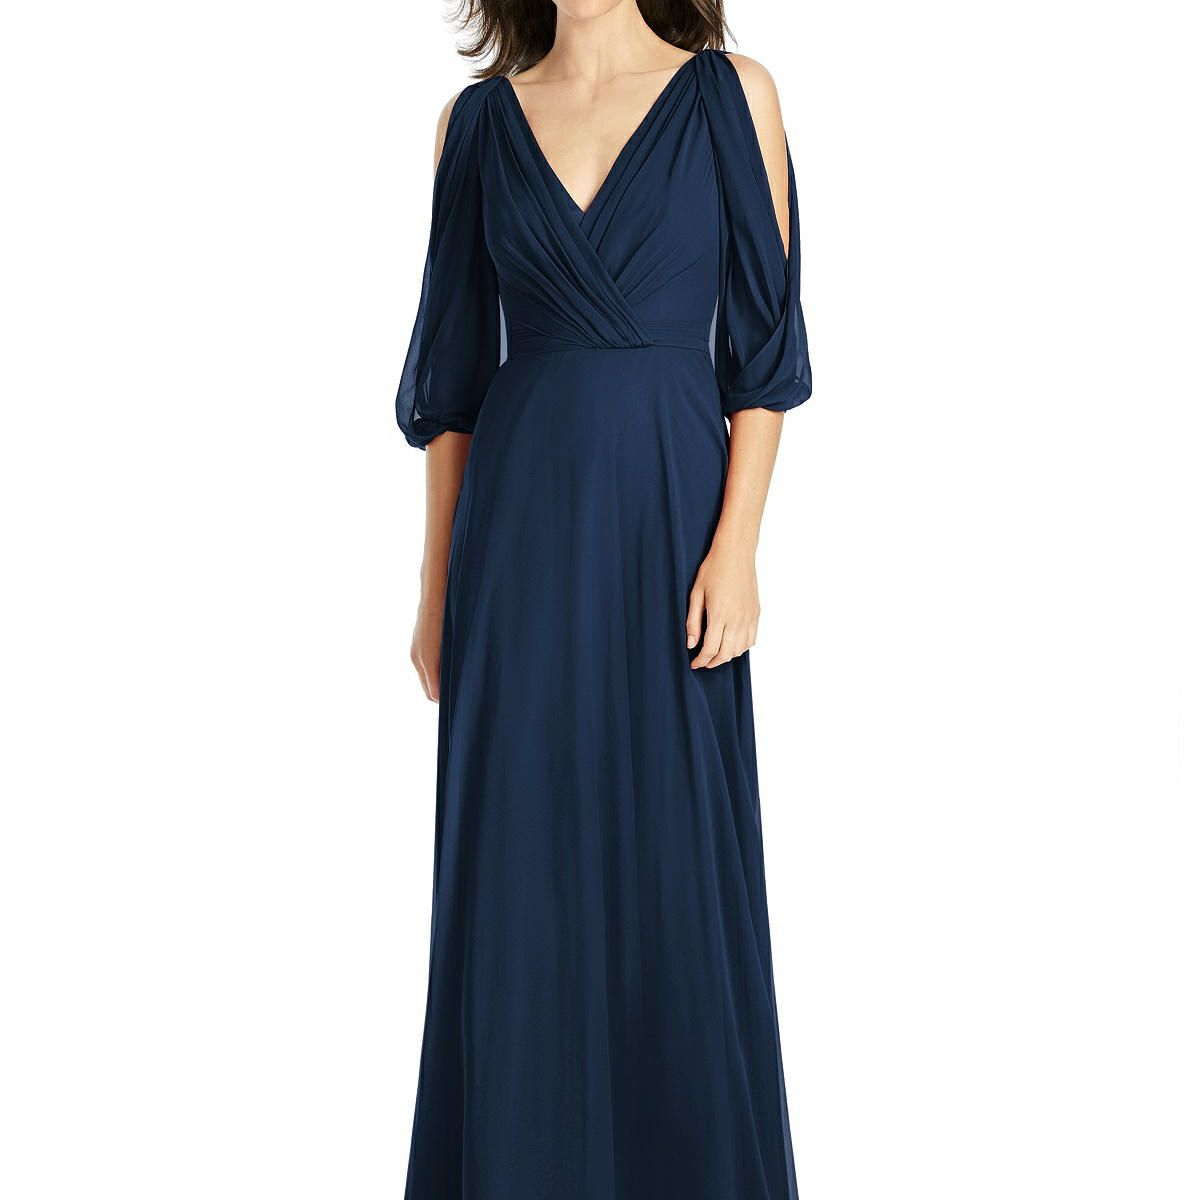 f9e6dcfe0d 31 Mother of the Bride Dresses You Can Buy Right Now